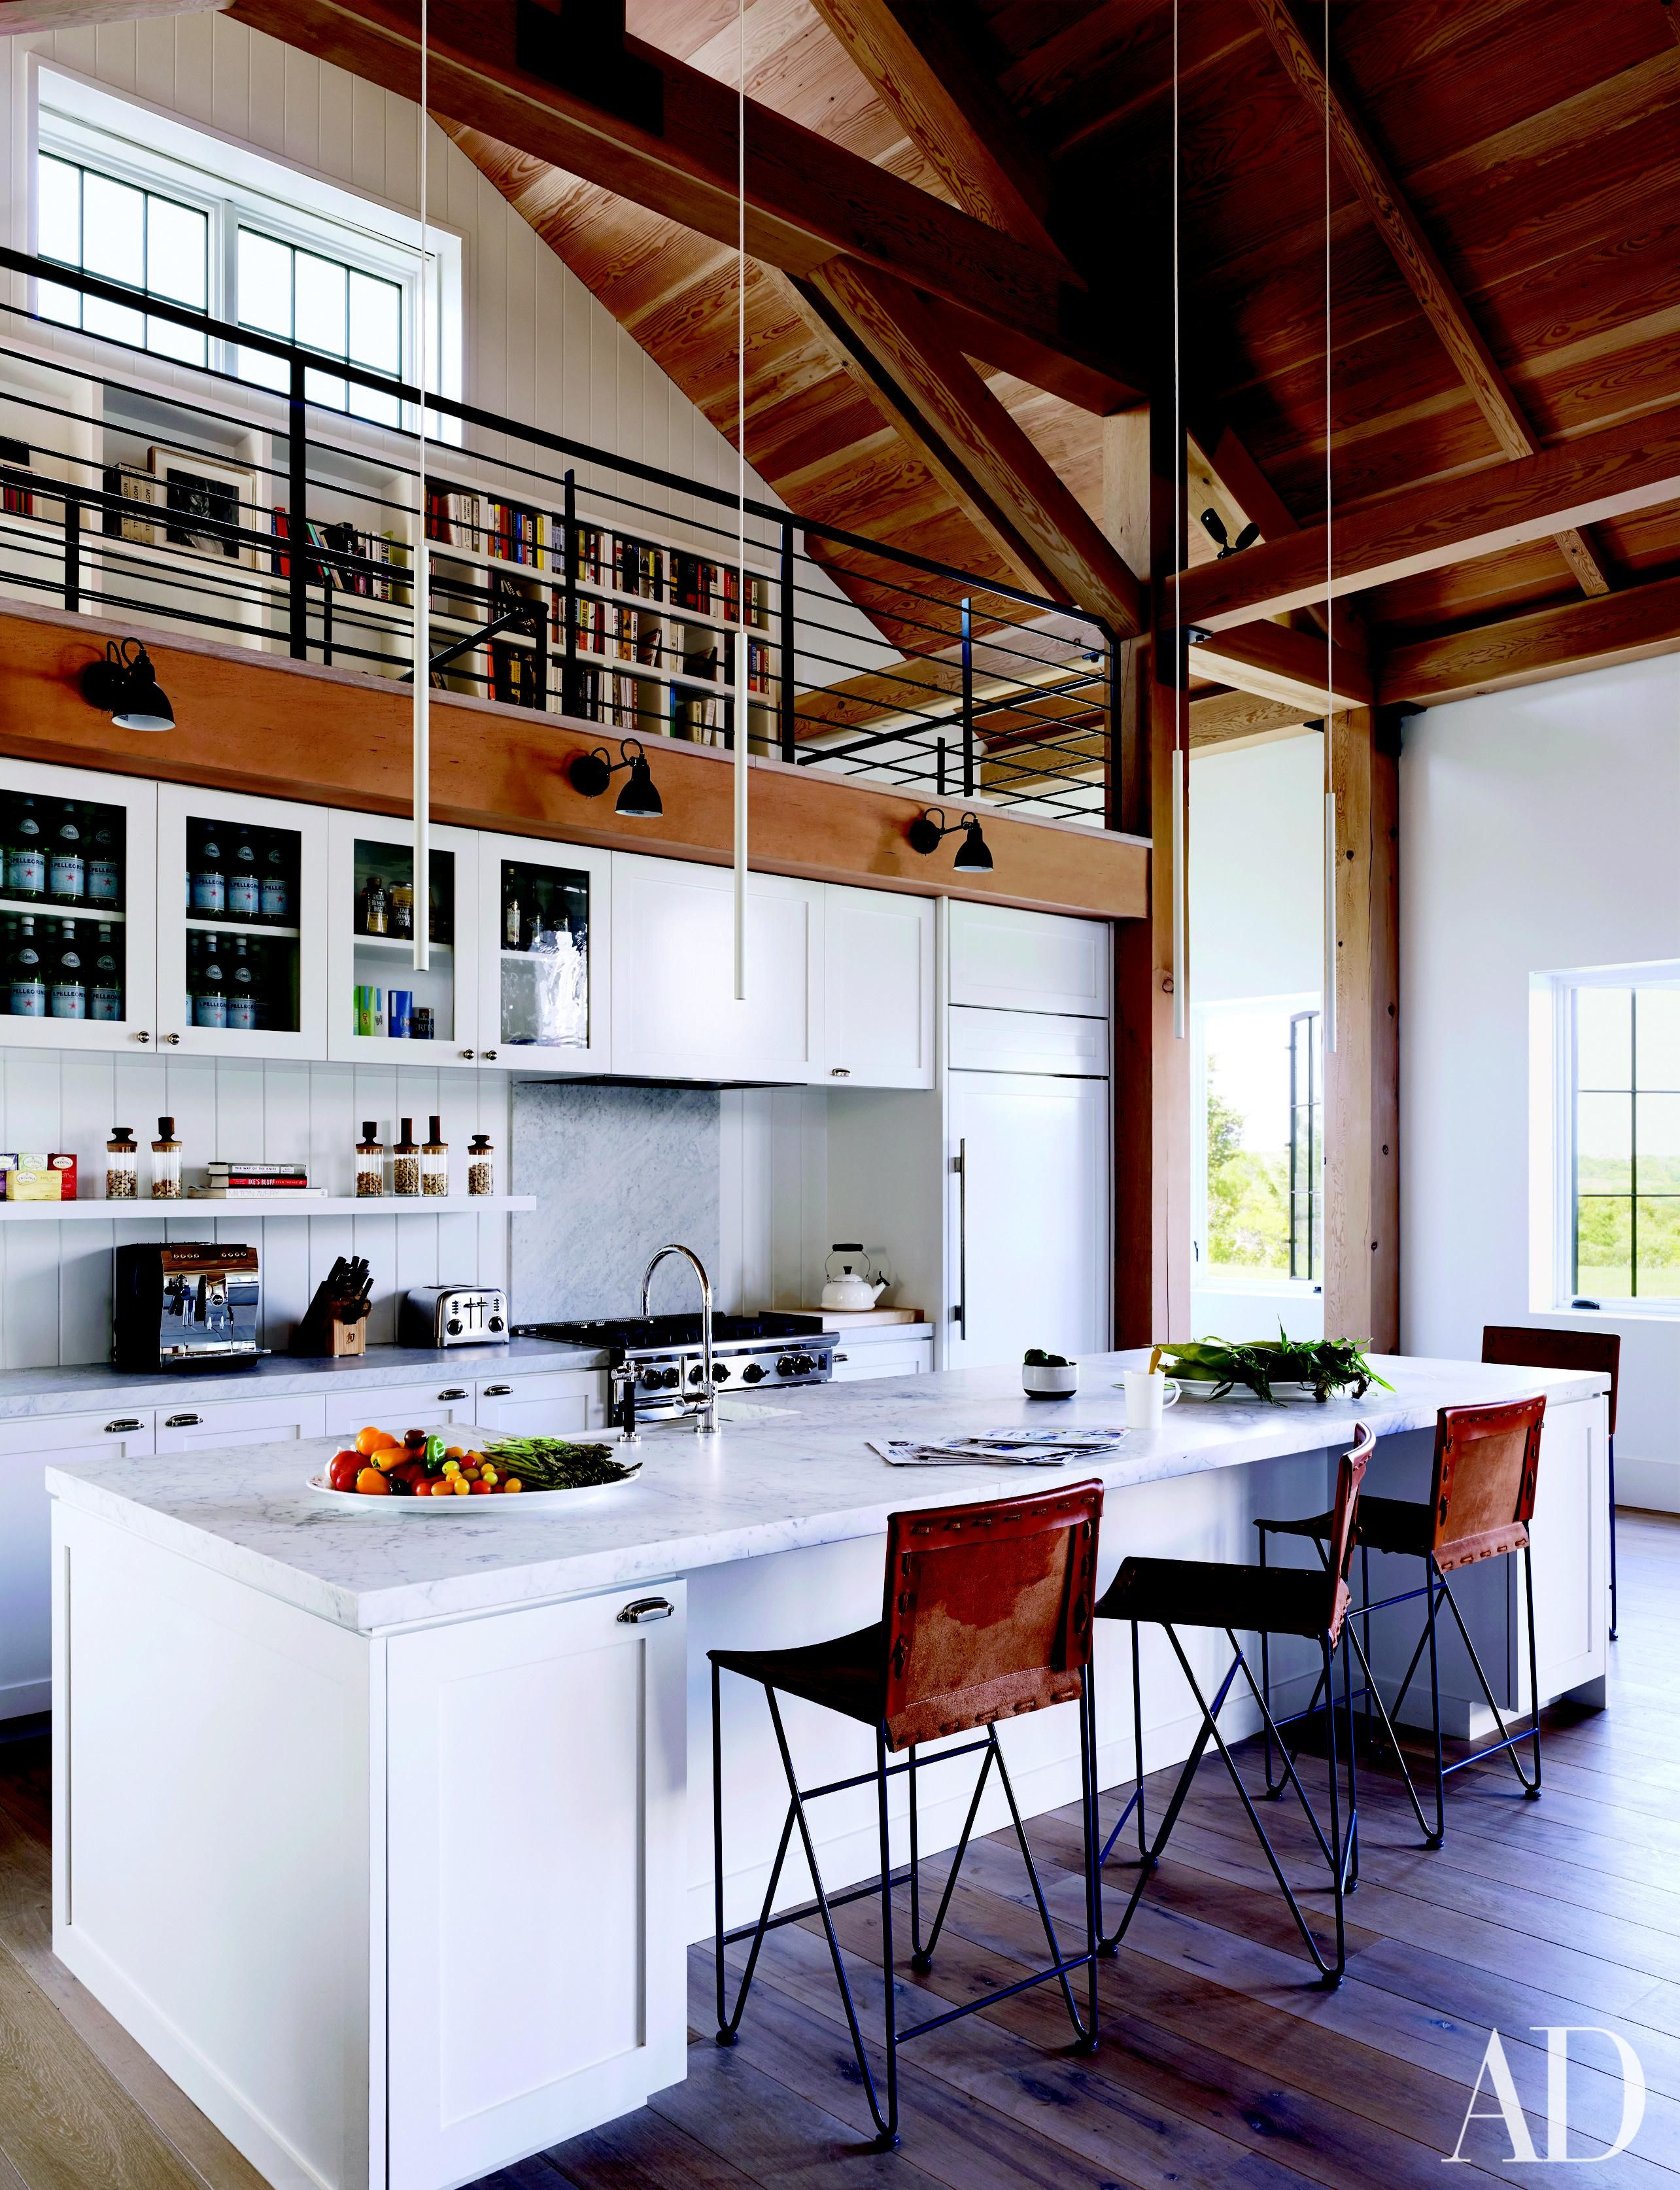 New york city architecture and design firm ashe leandro drew inspiration for this martha   vineyard house from traditional barns fashioning airy also cholla vista home by kendle collaborative outdoor spaces at rh pinterest